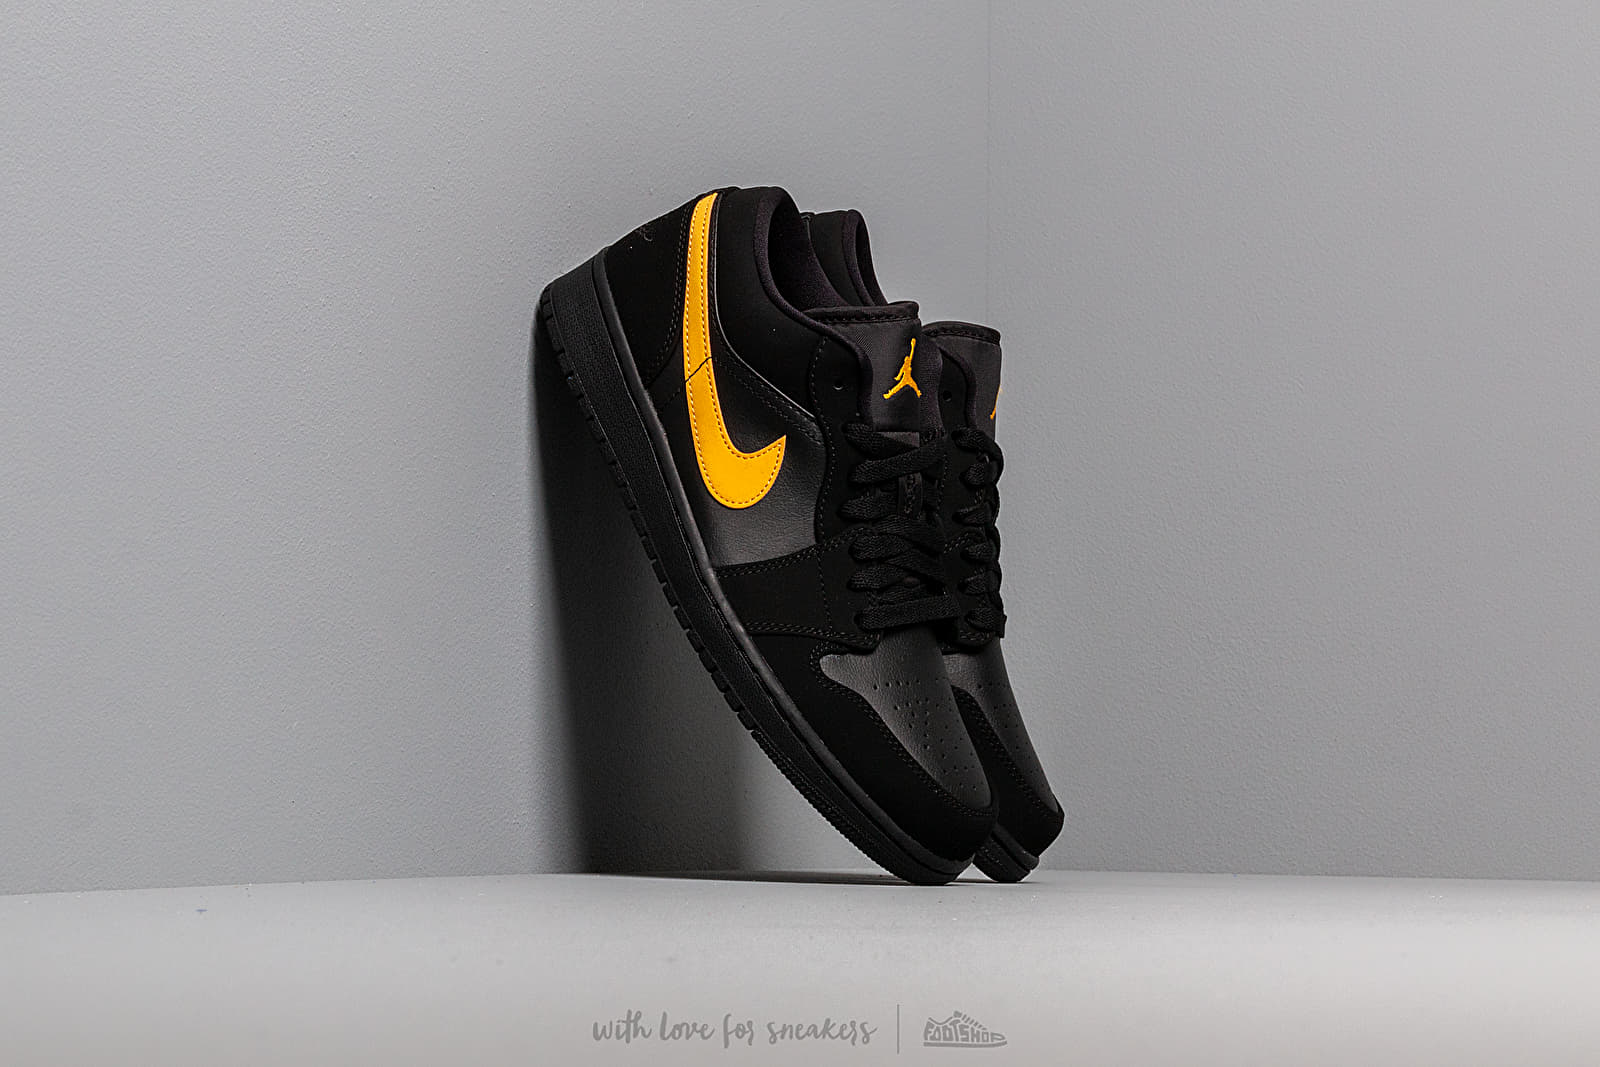 Air Jordan 1 Low Black University Gold Black | Footshop